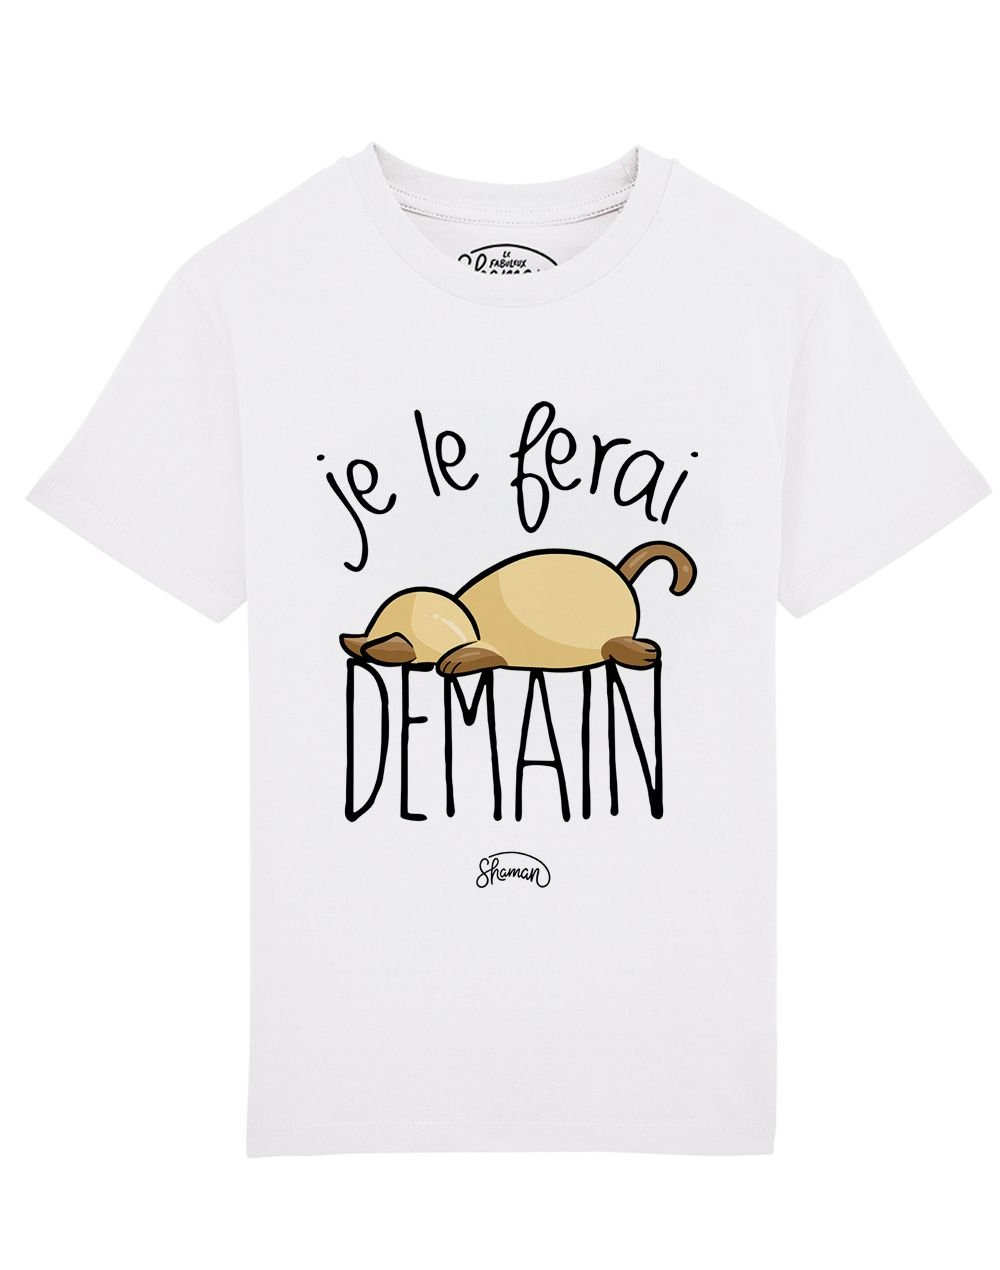 Tee Je le ferai demain chat